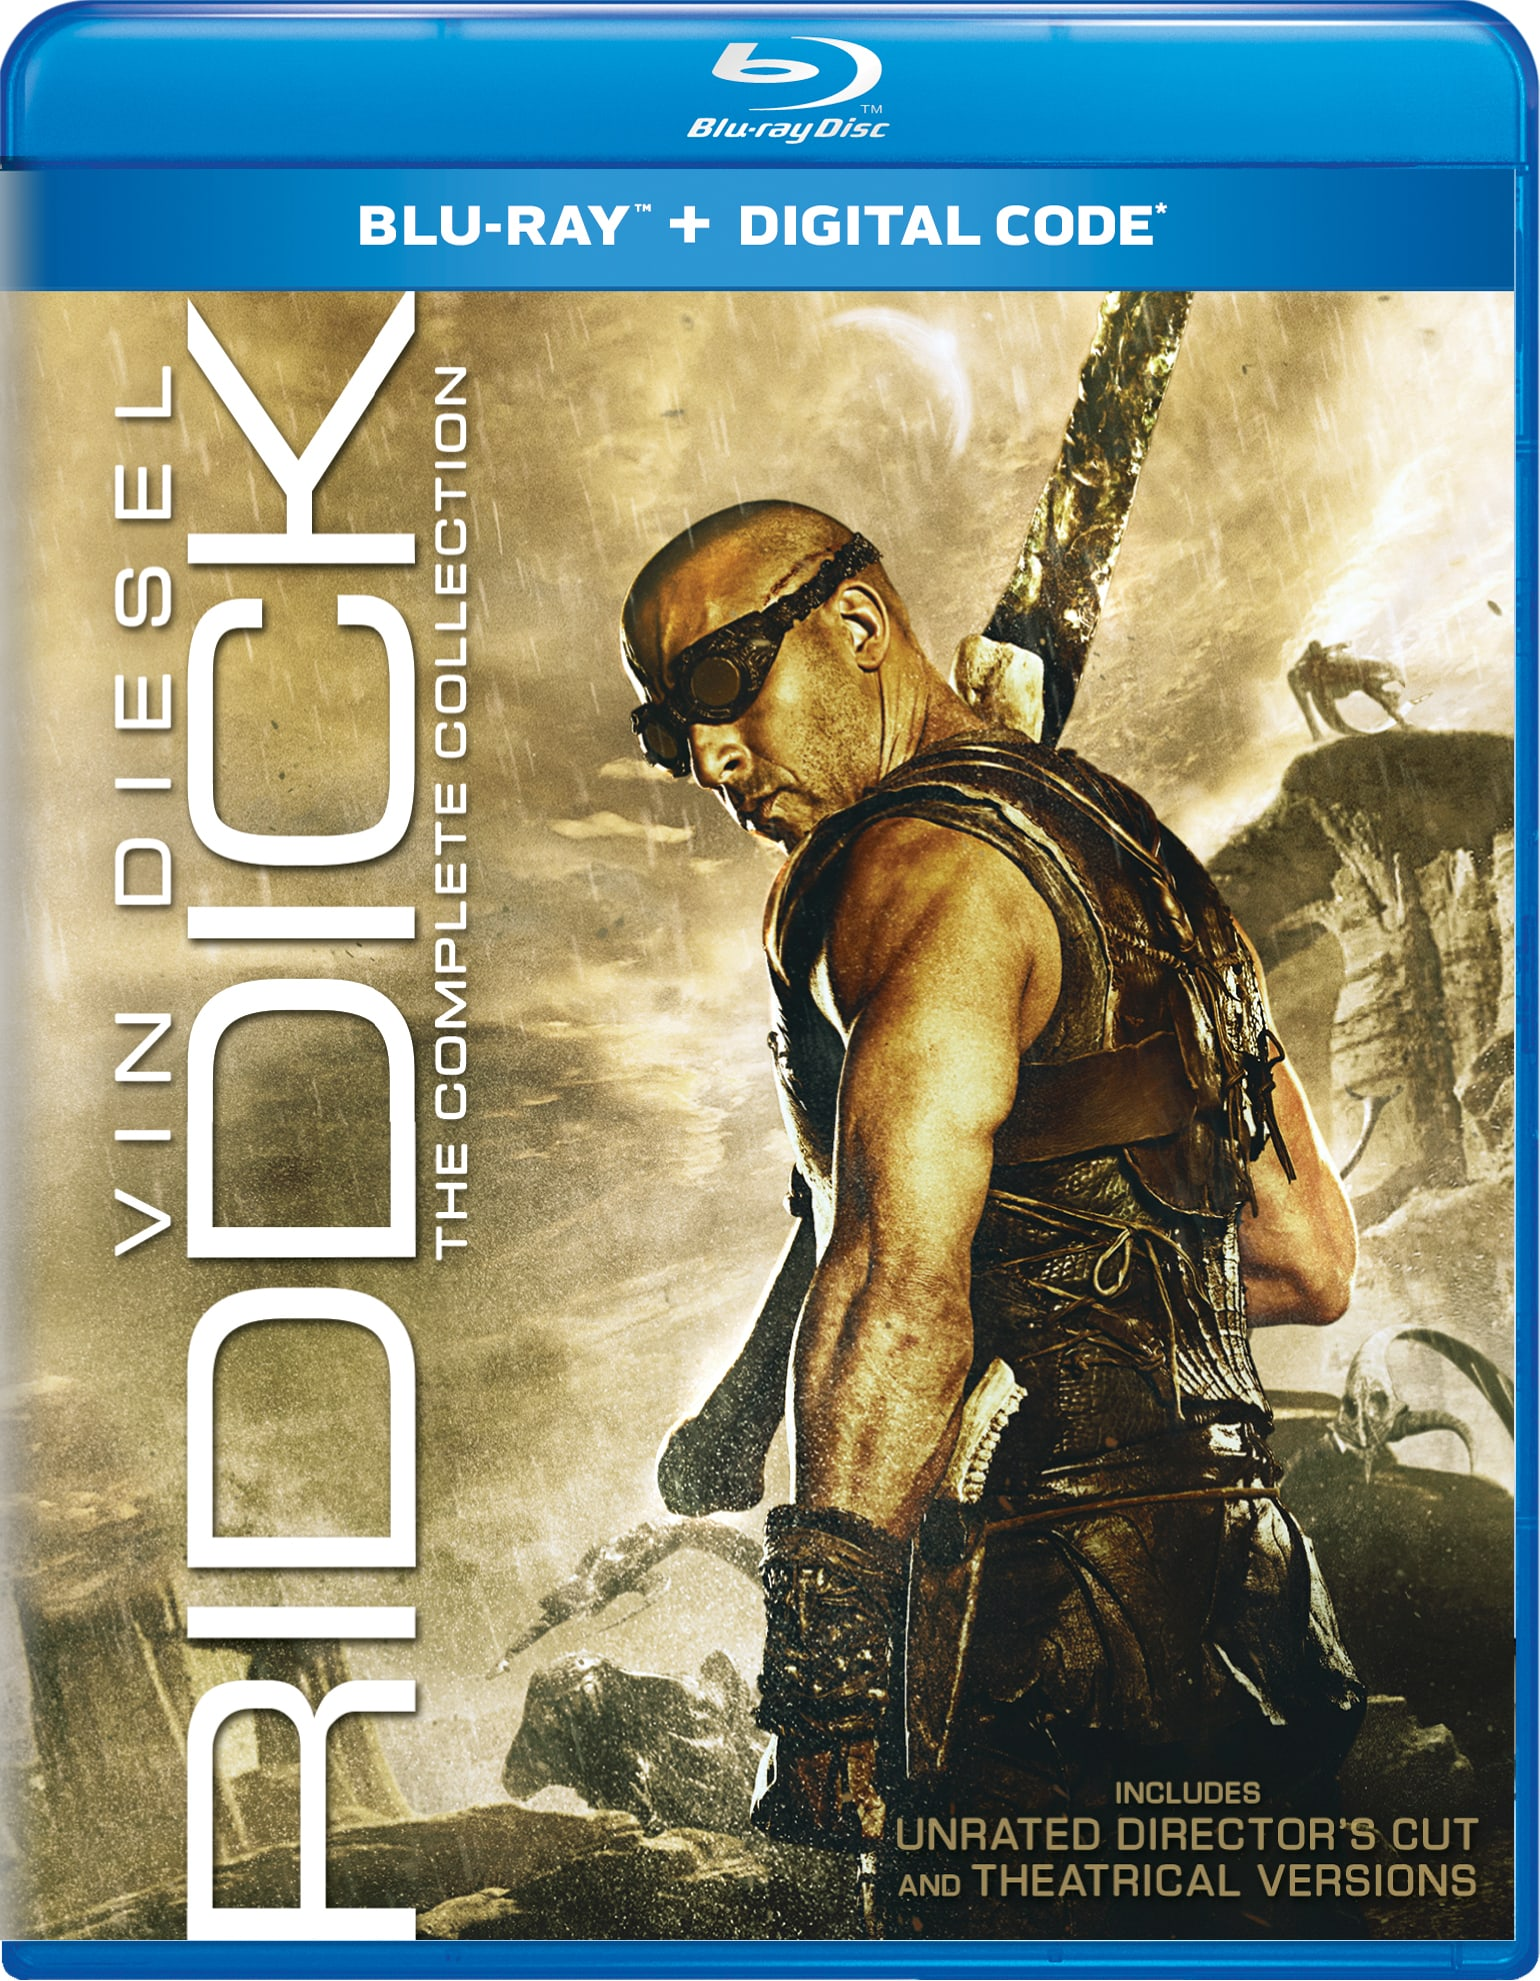 Riddick: The Complete Collection (Box Set) [Blu-ray]